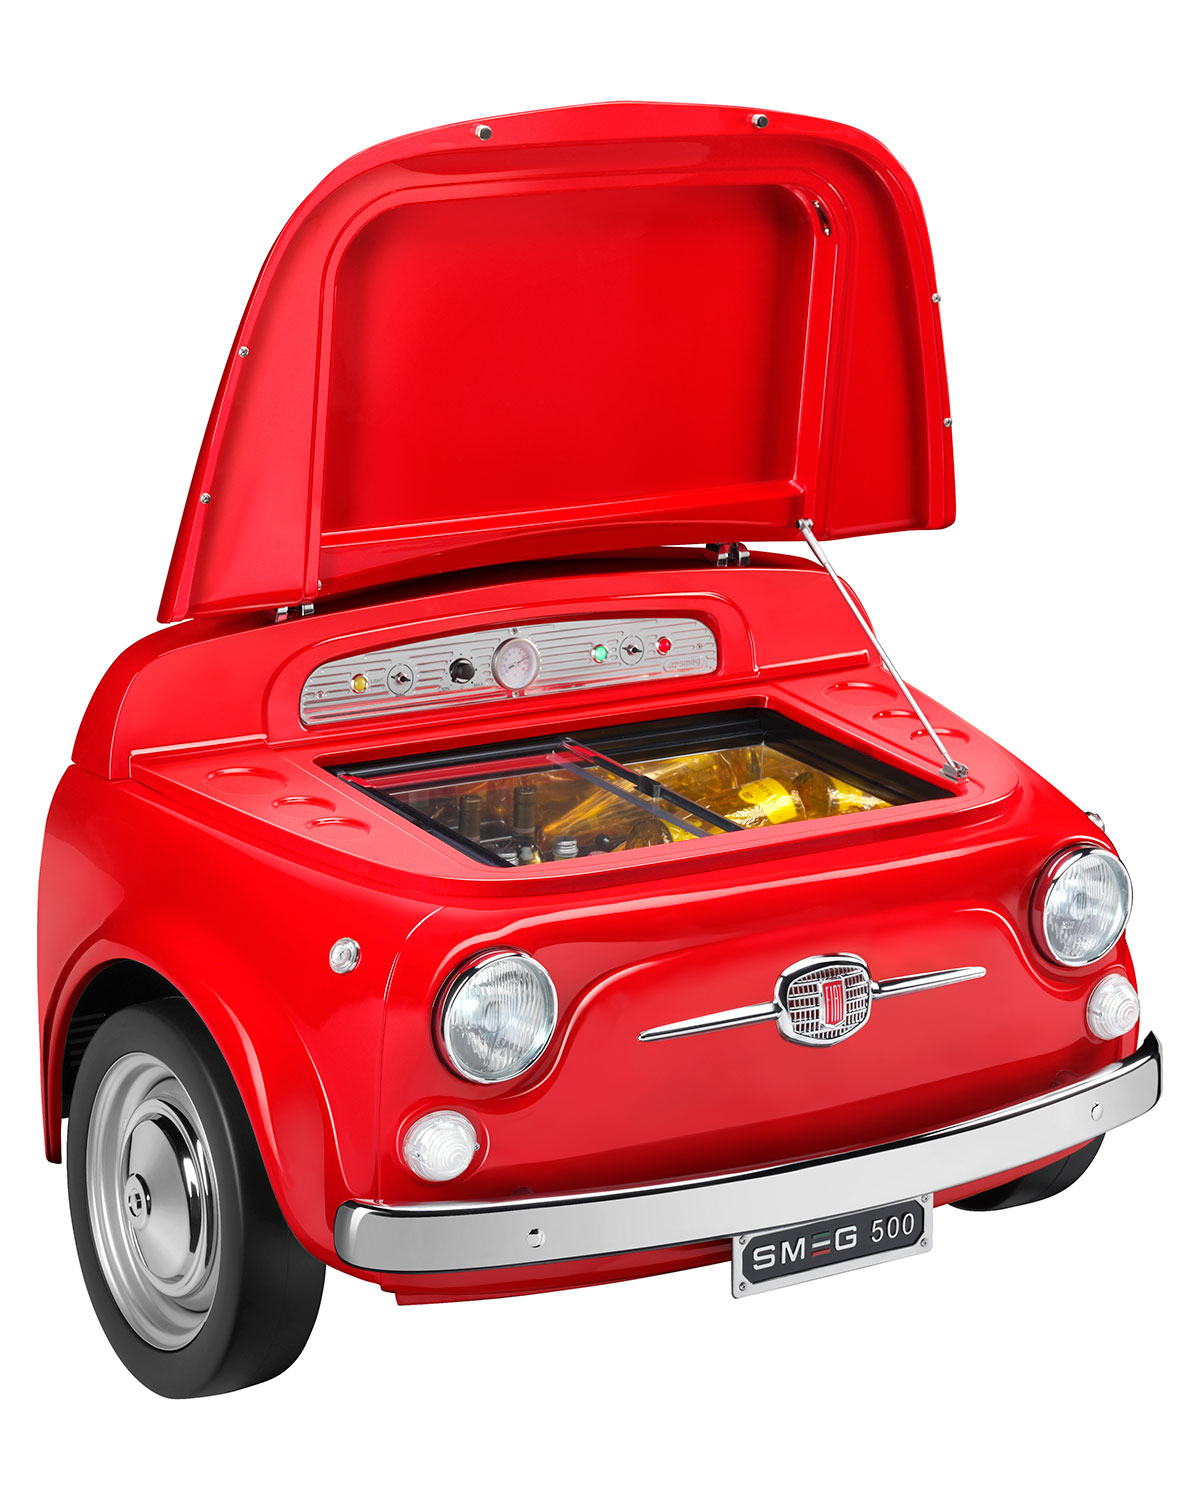 Smeg Fiat X Smeg Red Electric Cooler Neiman Marcus